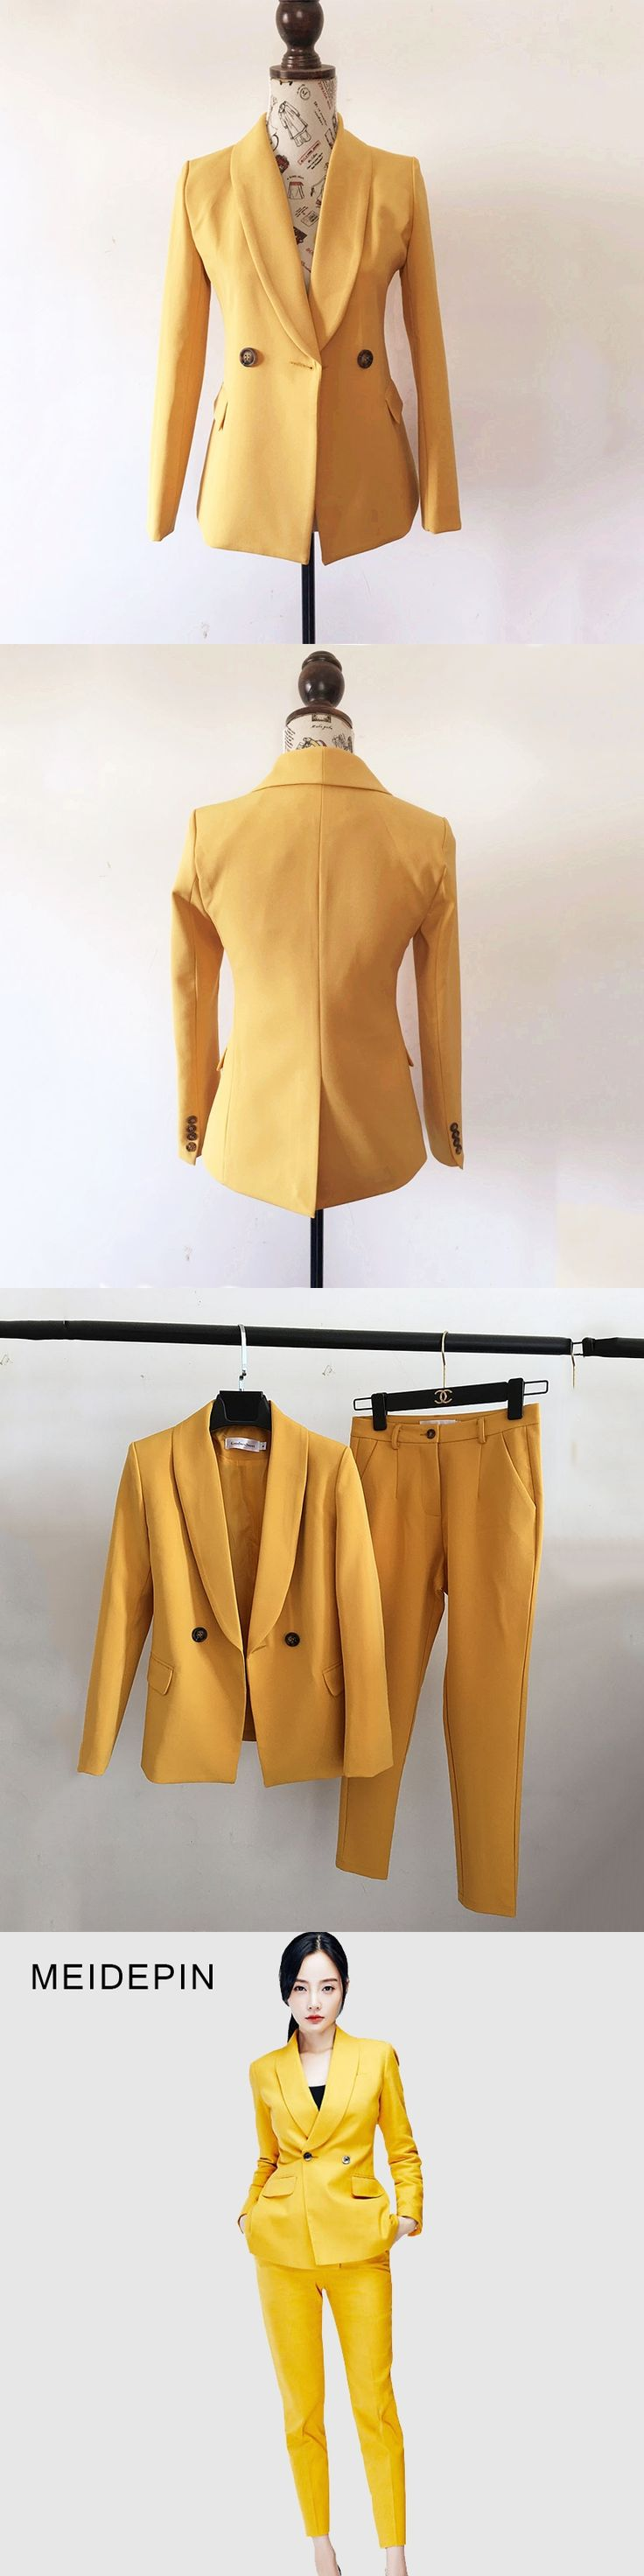 Unique Style Women High Street Solid Color Yellow Pant Suits Single Button Blazer Slim Trousers Bodycon Brief Twin Set Outfits